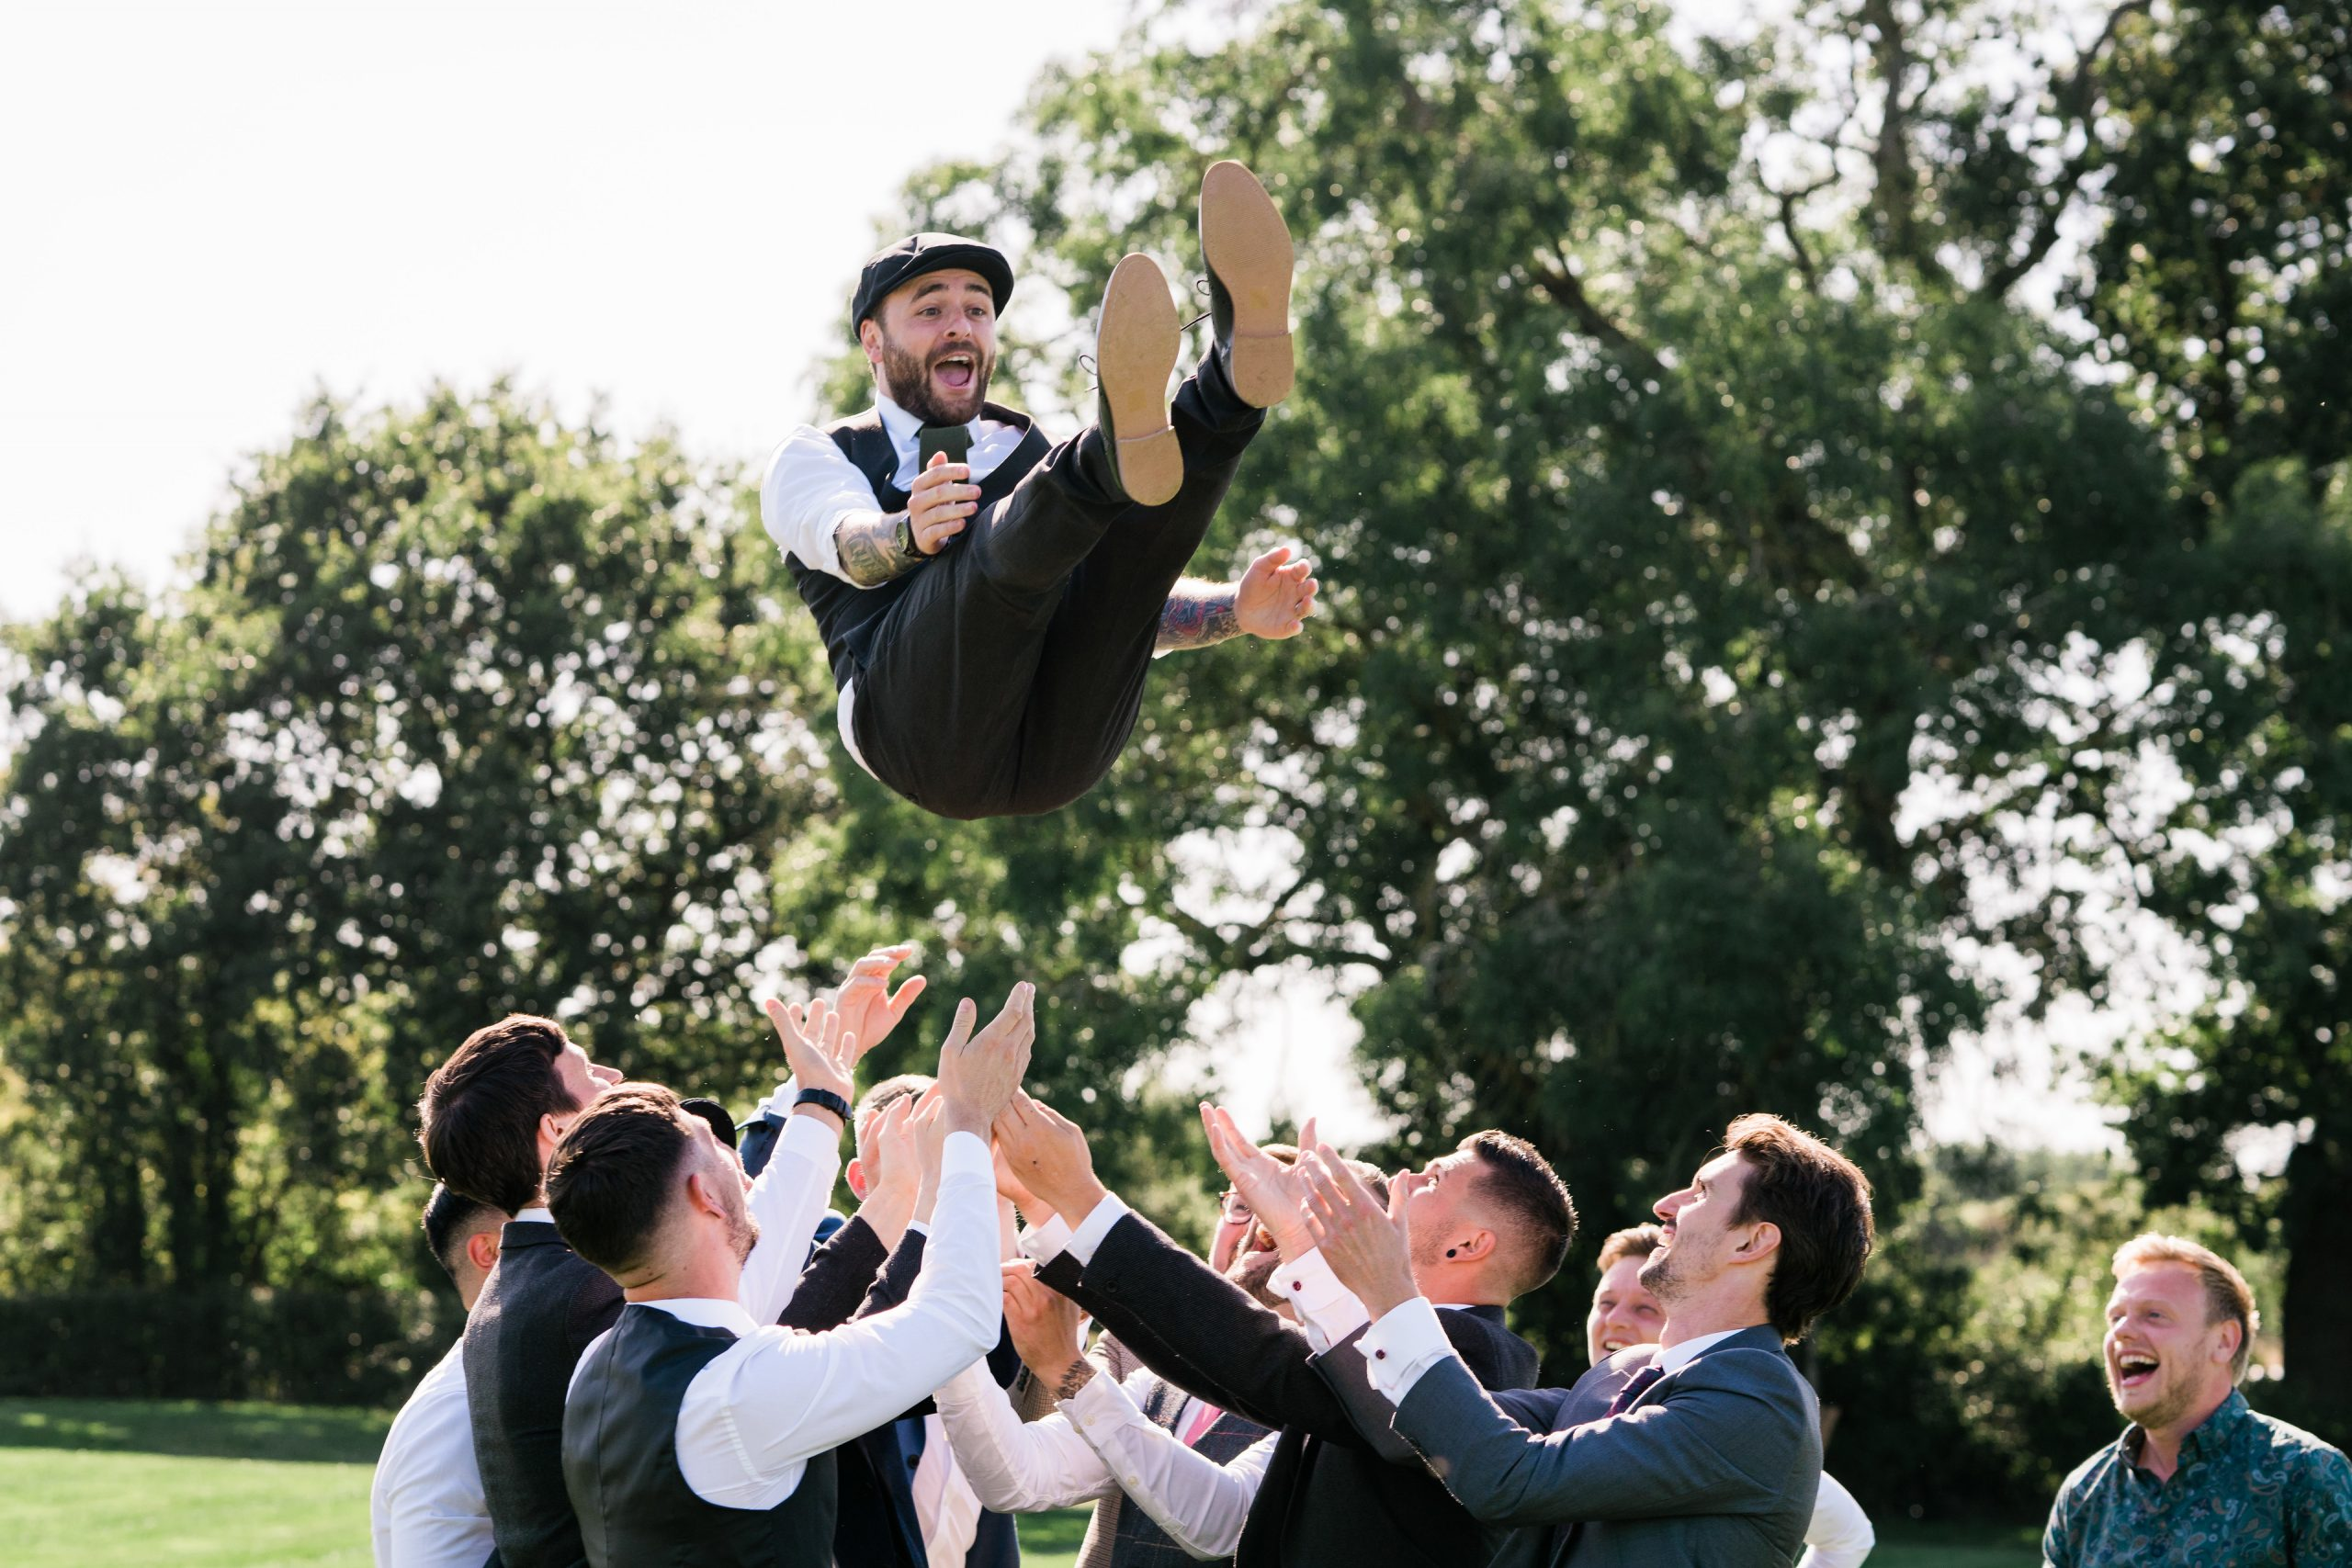 Groom is thrown in the air by his groomsmen as they are all laughing and smiling